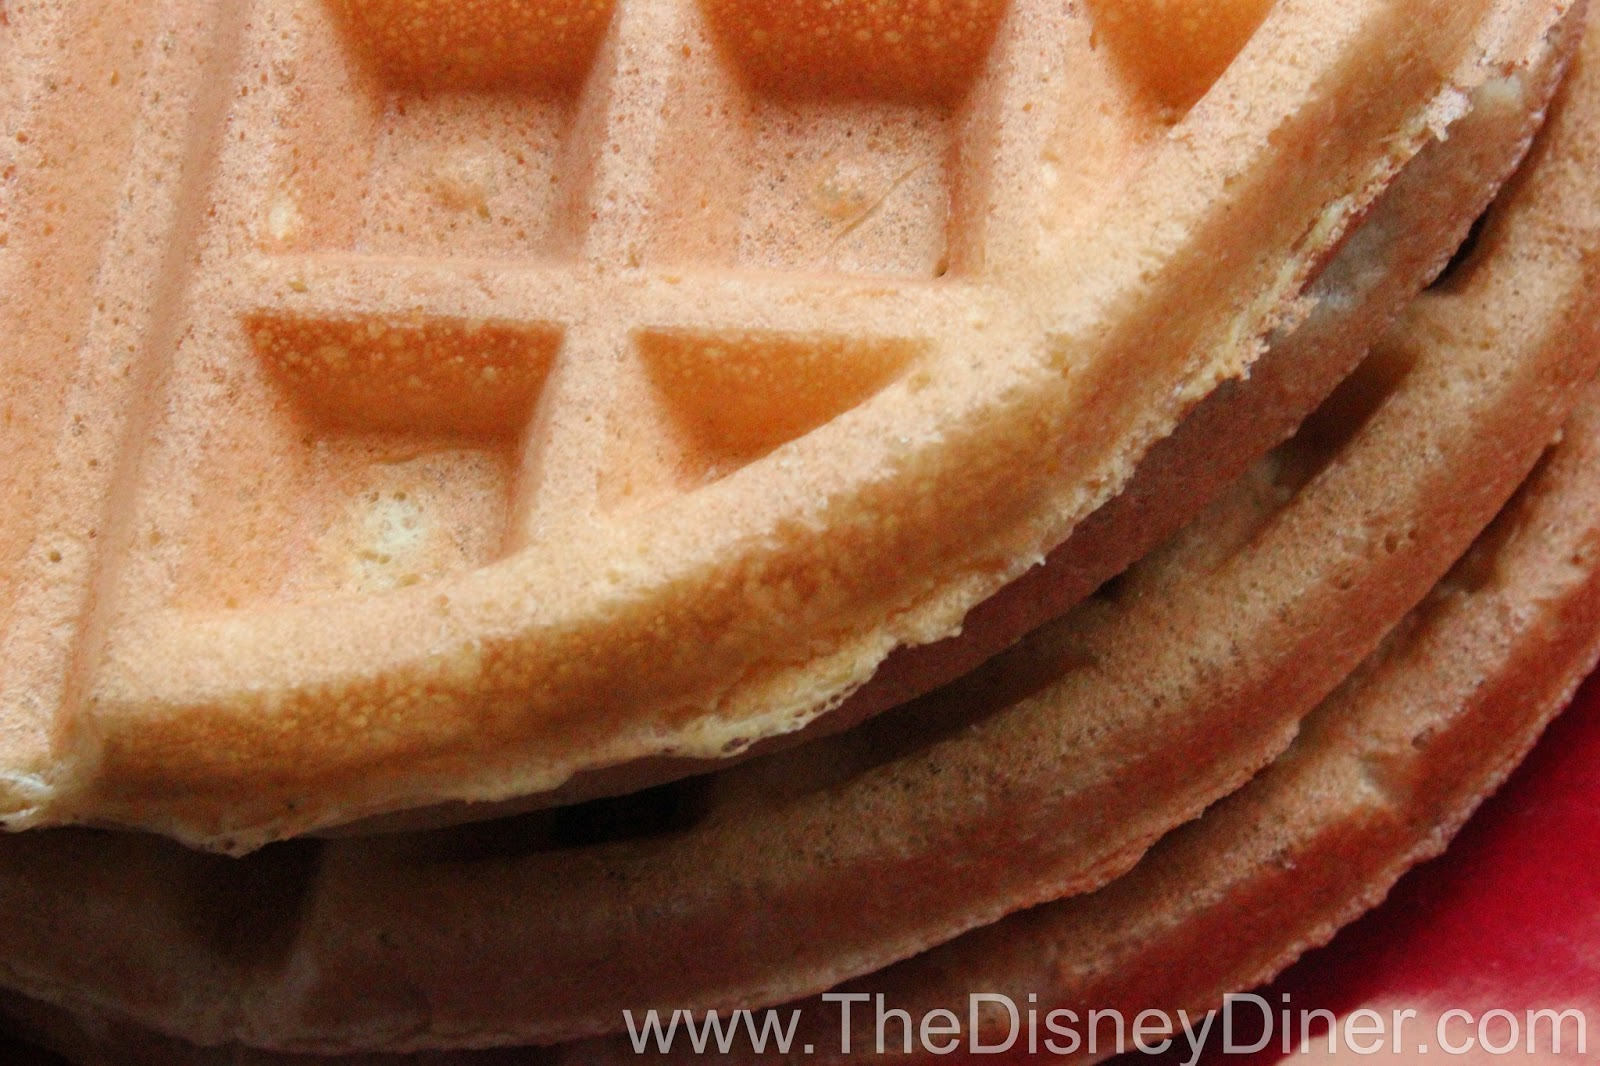 The Disney Diner: Disney World and Disneyland Waffle Recipe